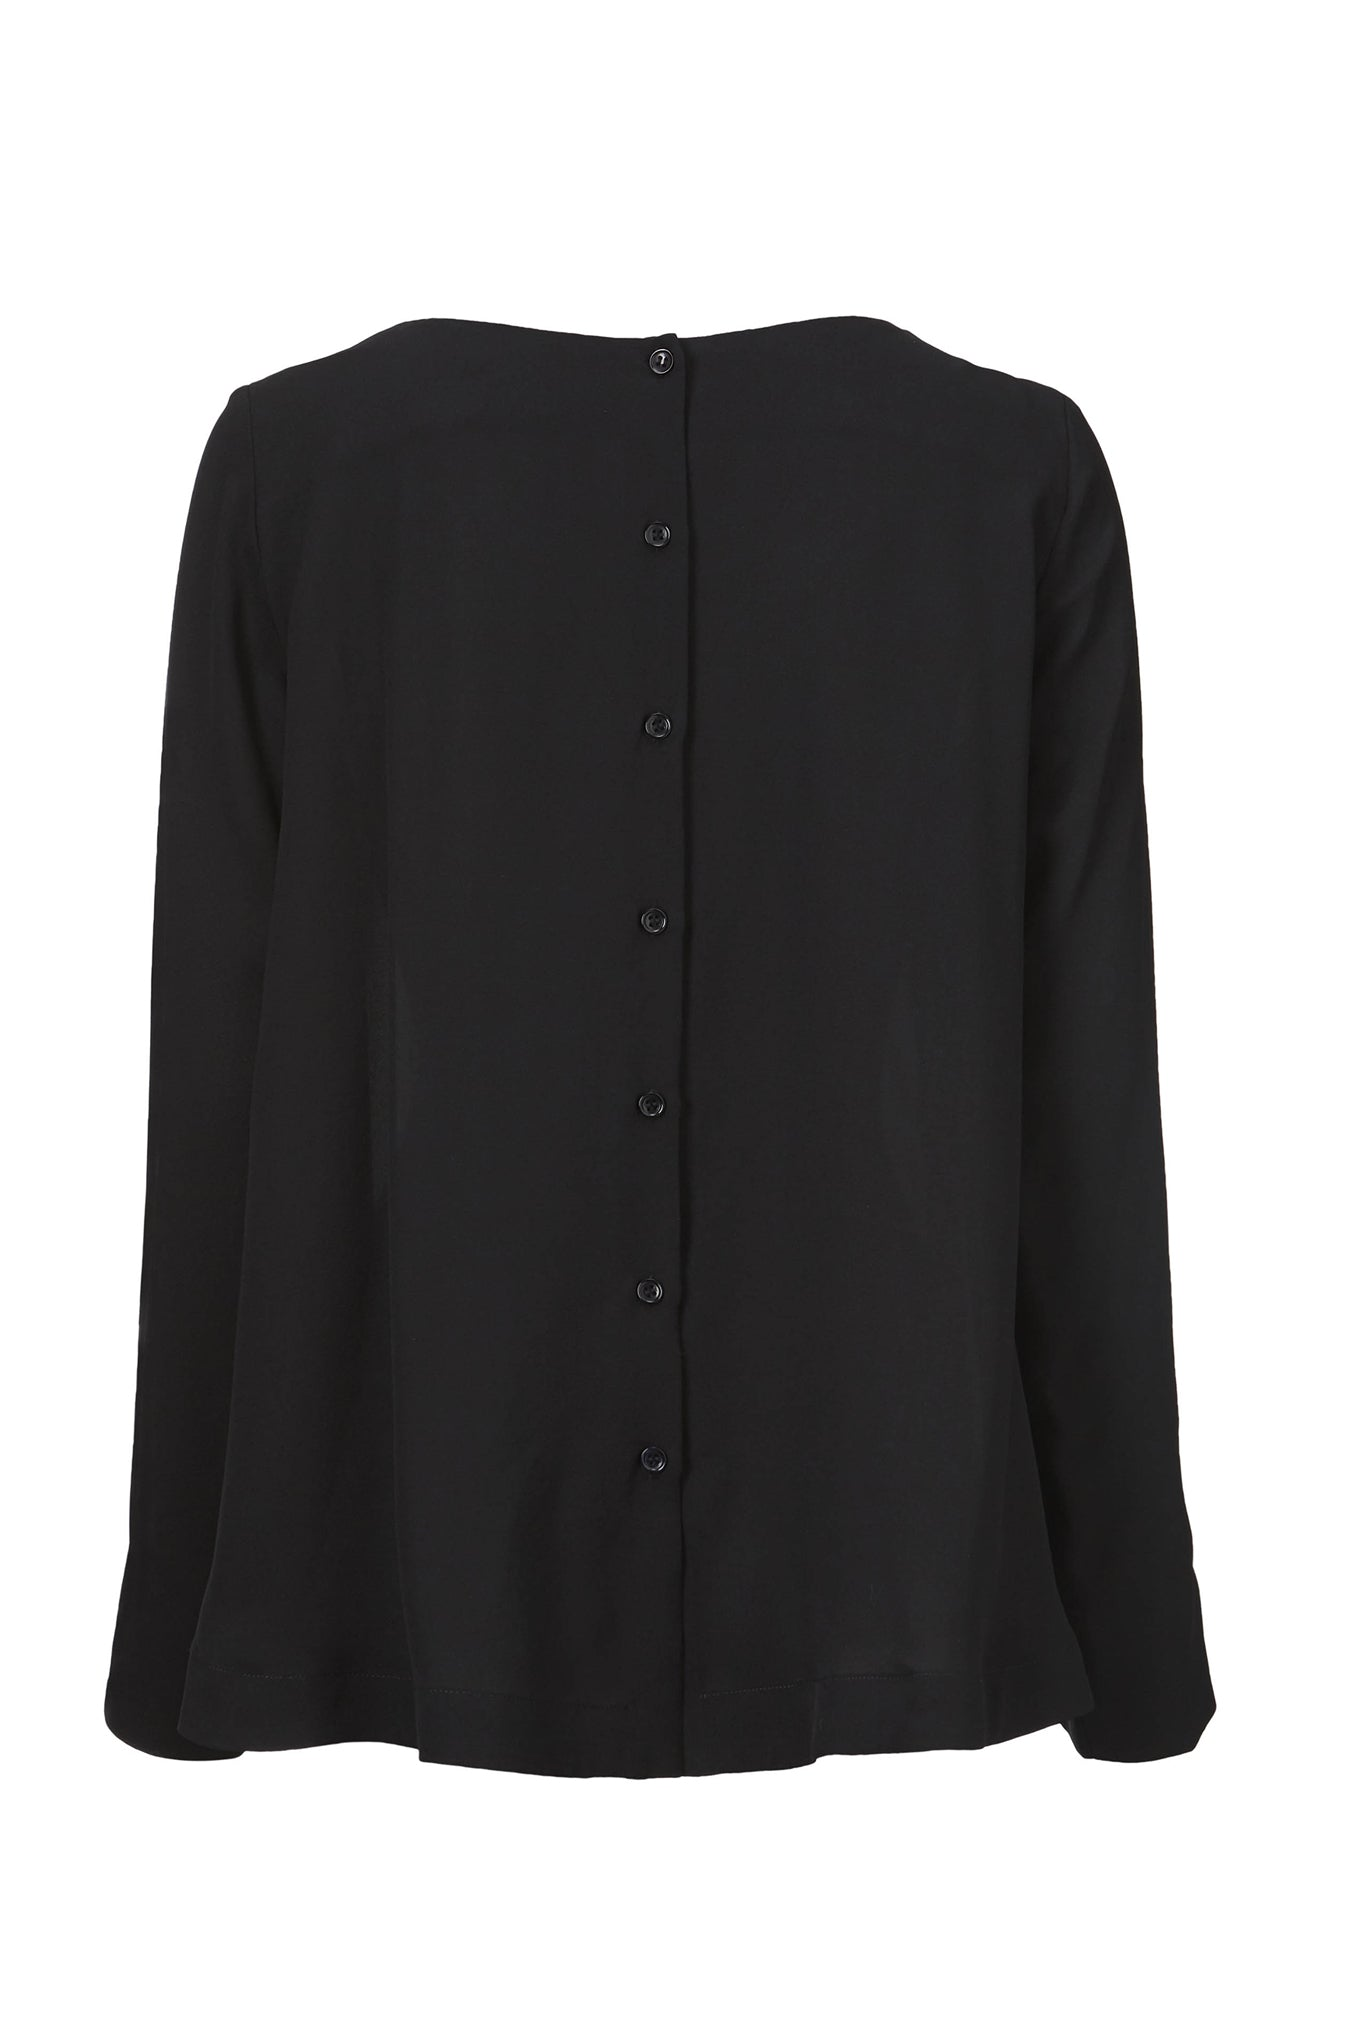 A Blouse - Black